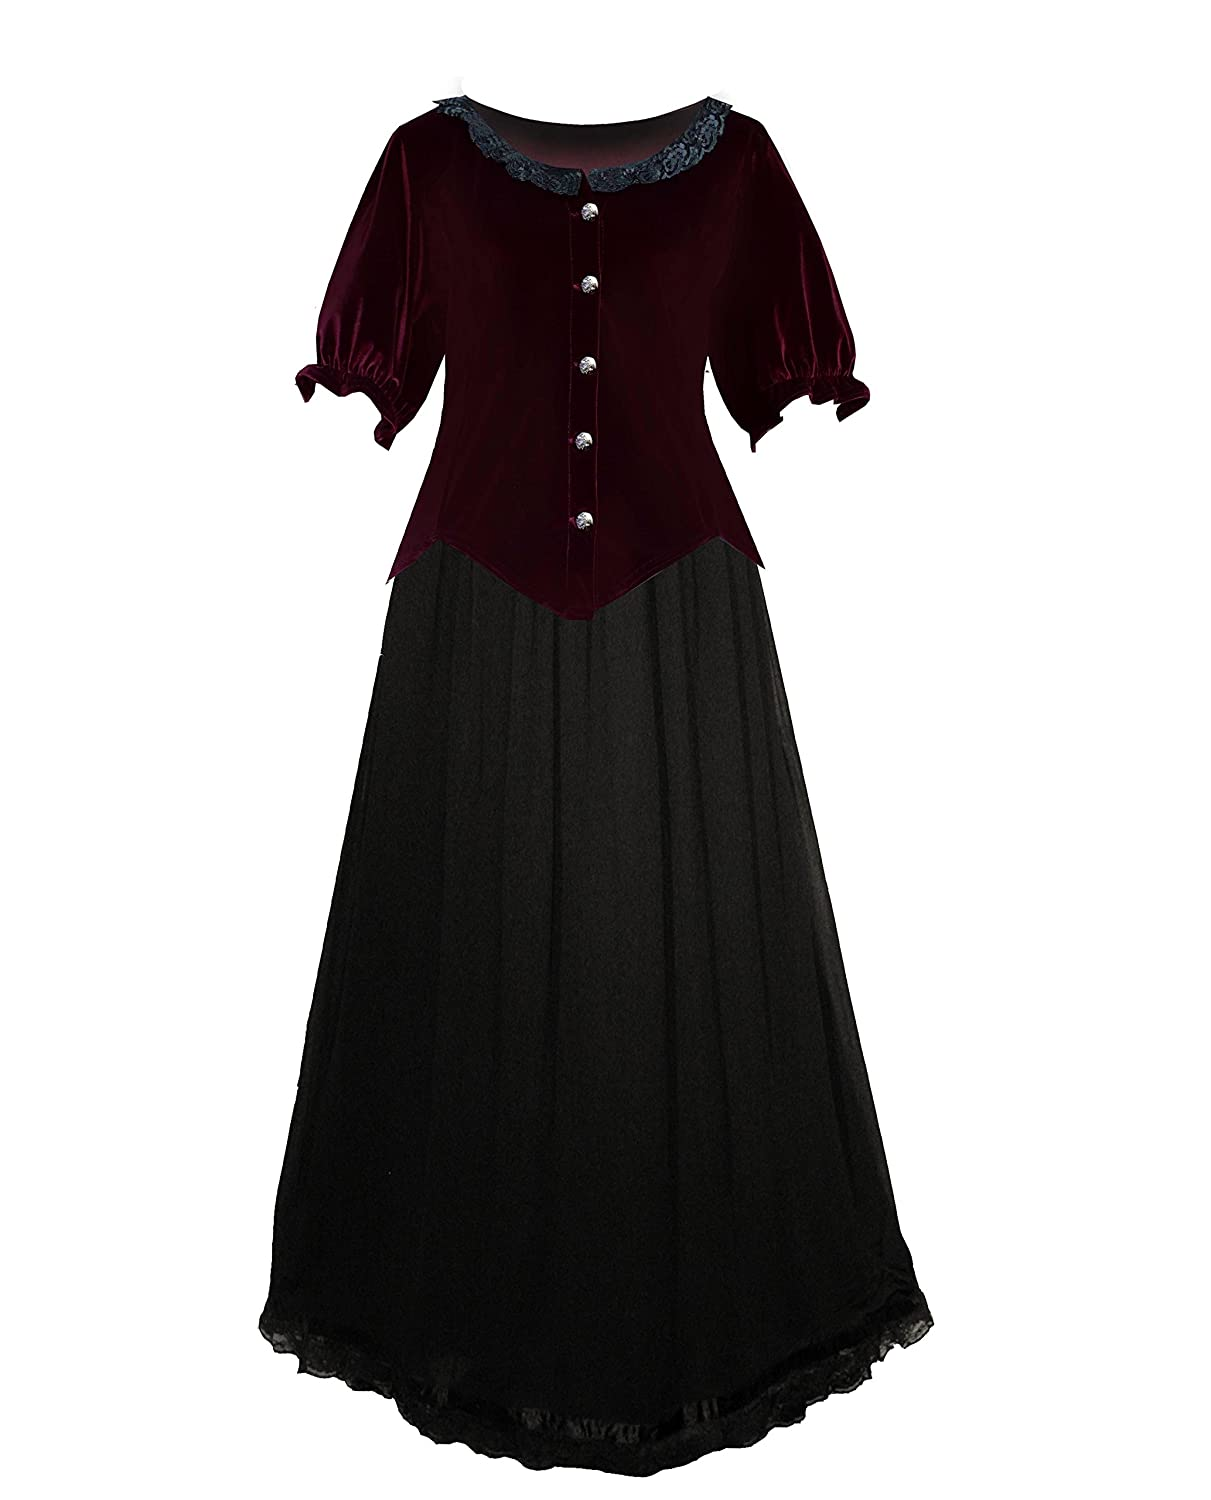 1900-1910s Clothing Victorian Steampunk Gothic Renaissance Velvet Top & Long Skirt $89.00 AT vintagedancer.com